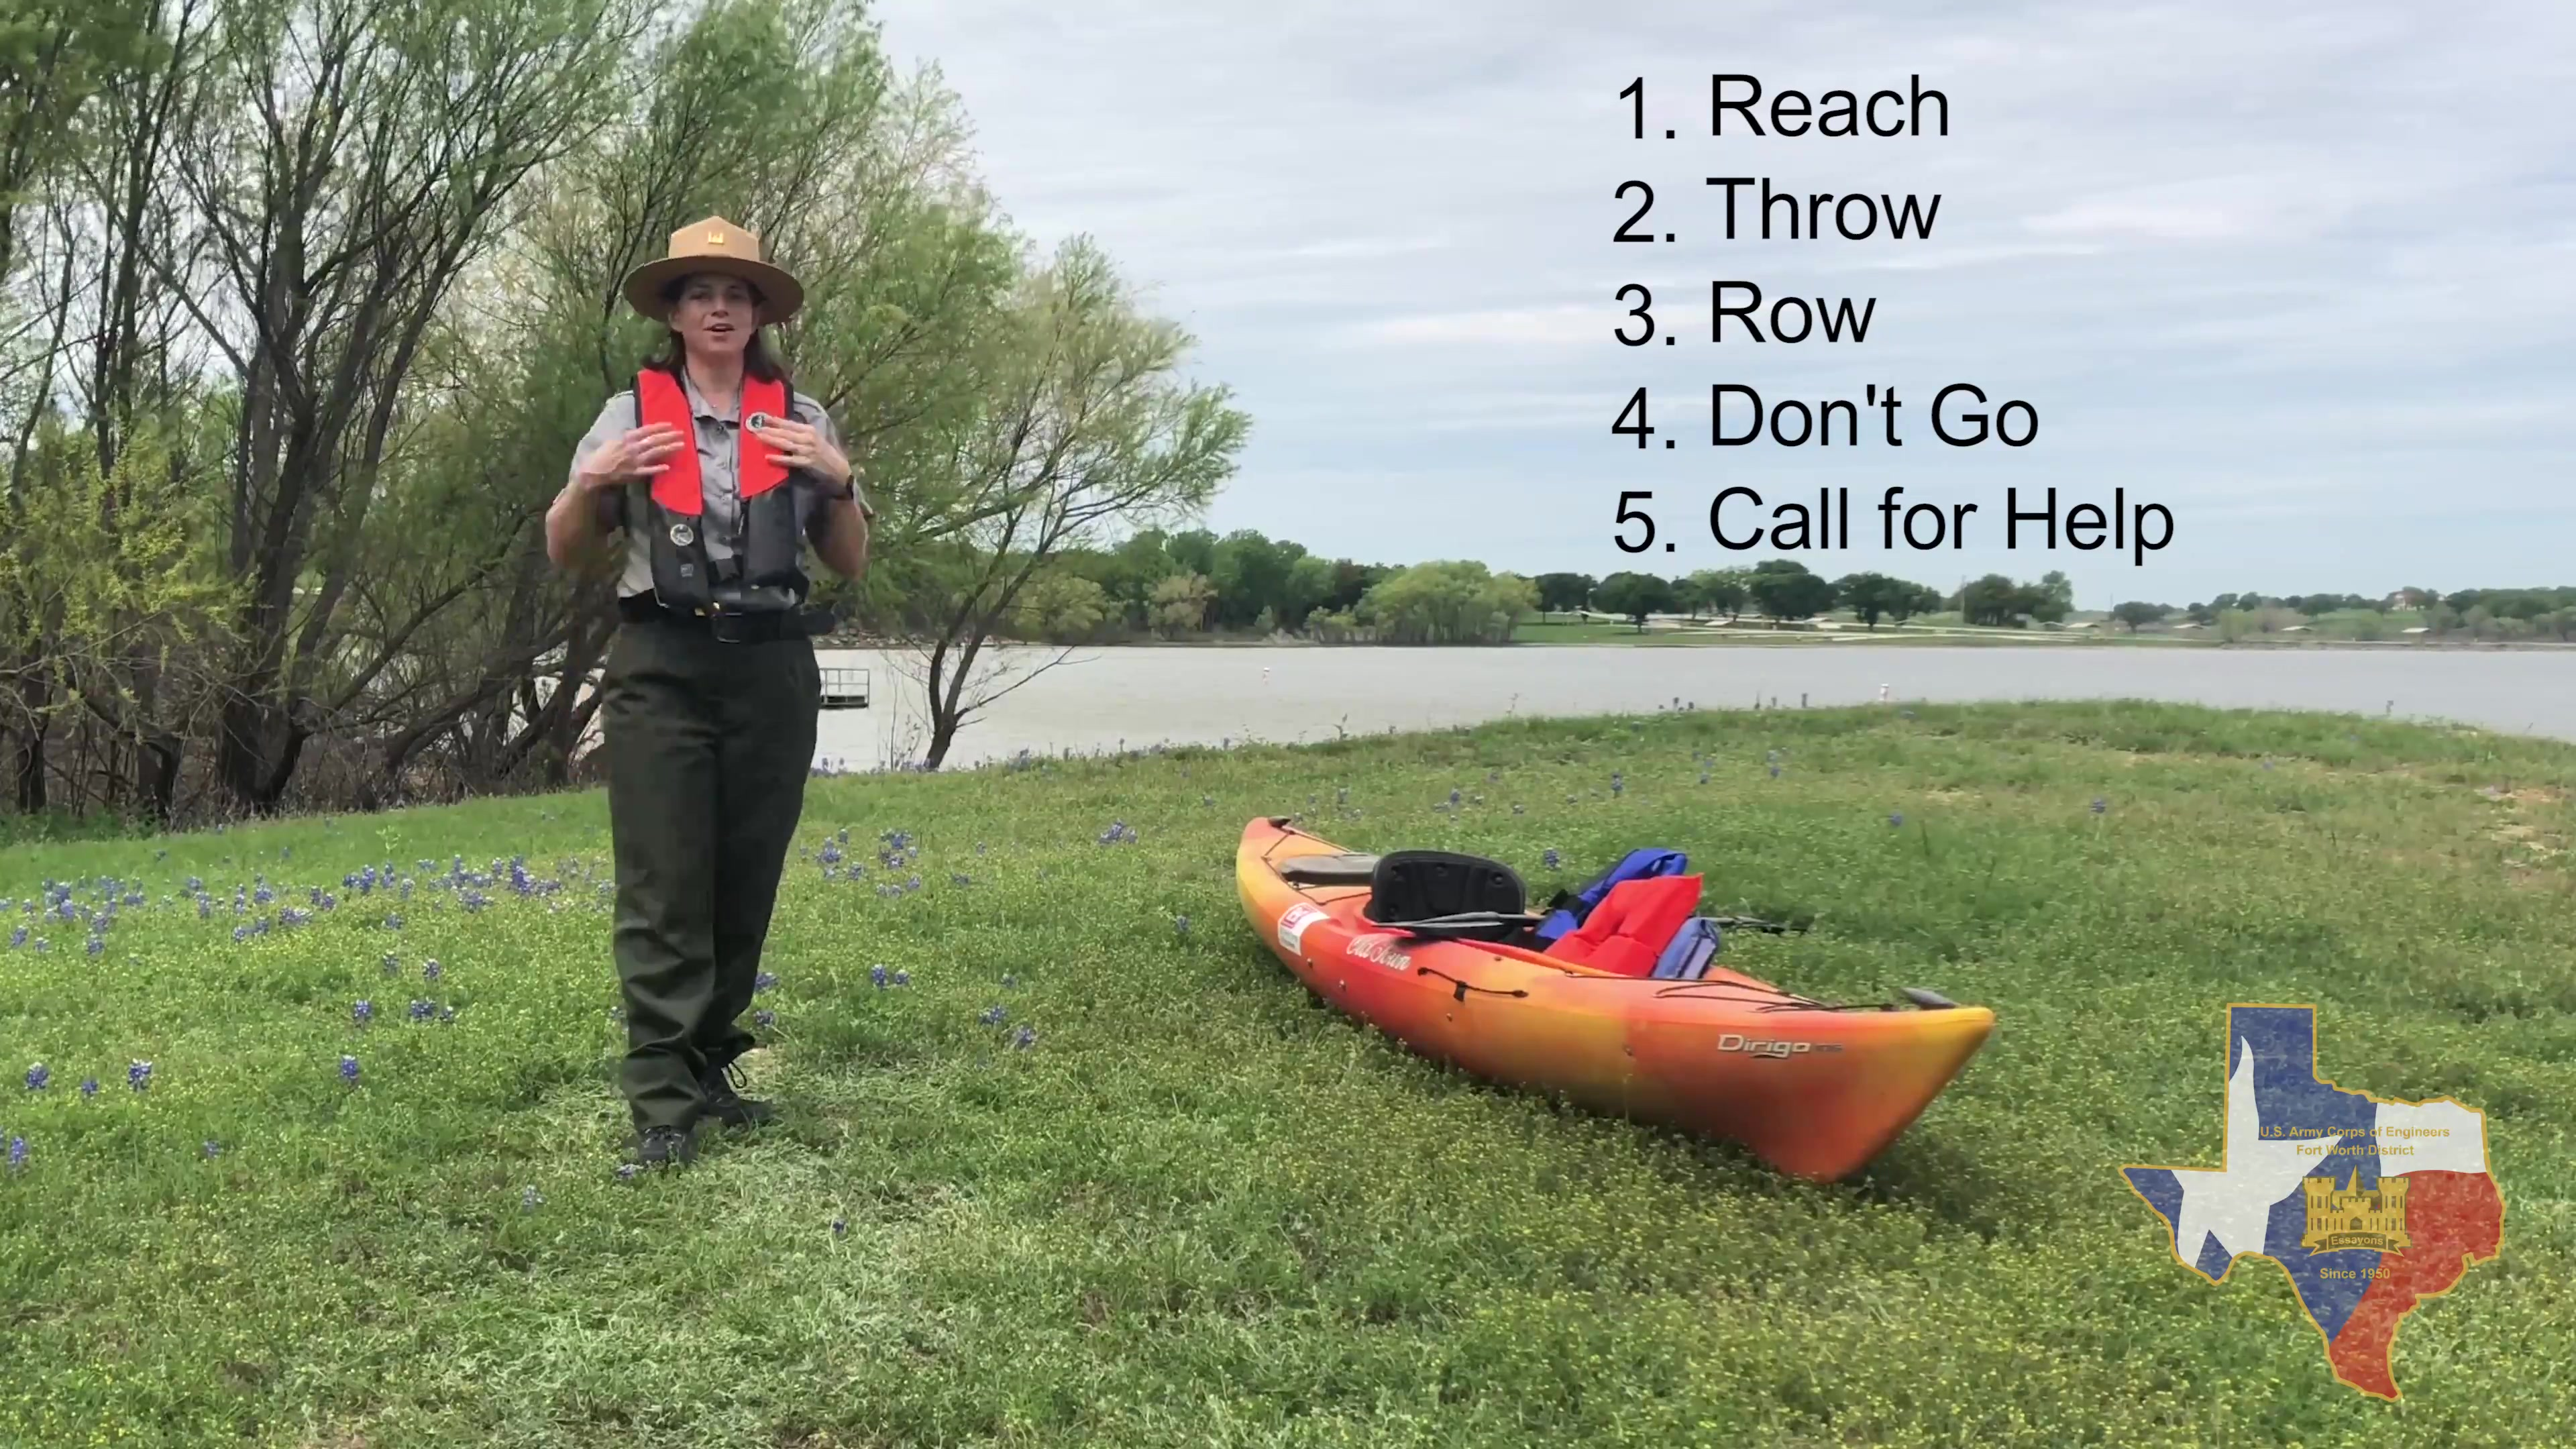 USACE Fort Worth's Proctor Lake Ranger Stephanie Jones teaches the FIVE things you need to know for helping a drown victim.